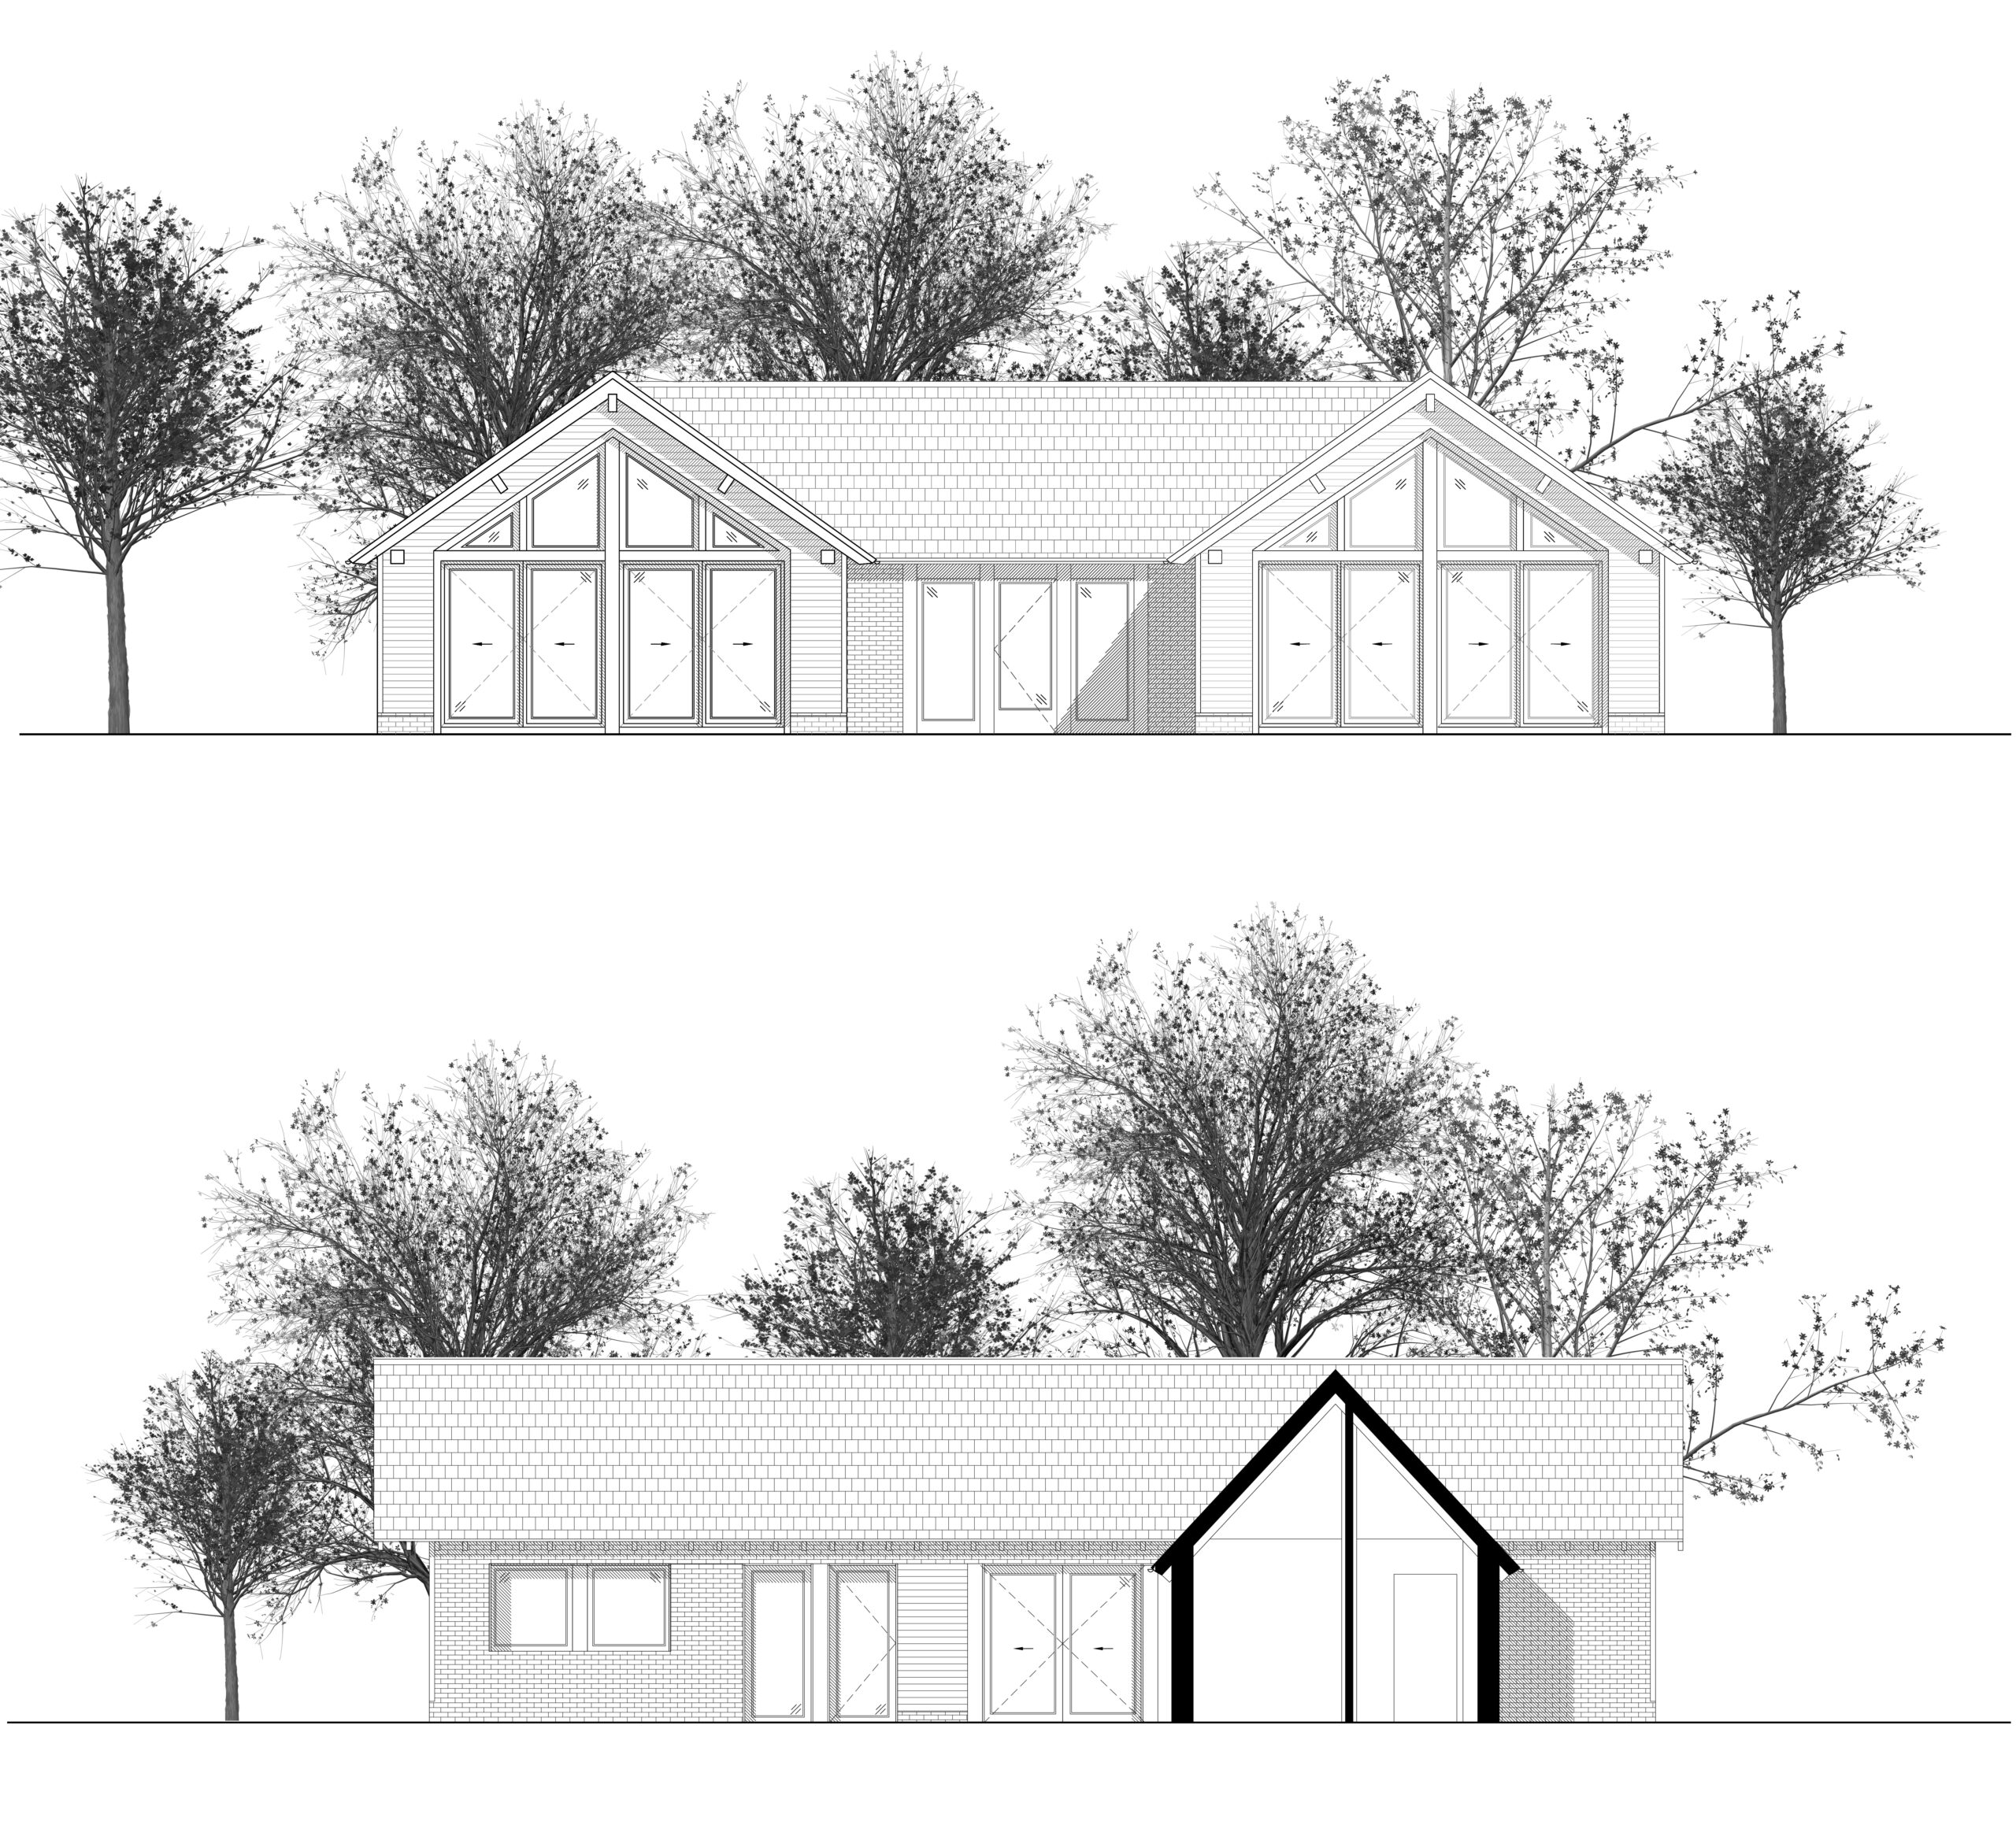 Holmwood planning approval granted